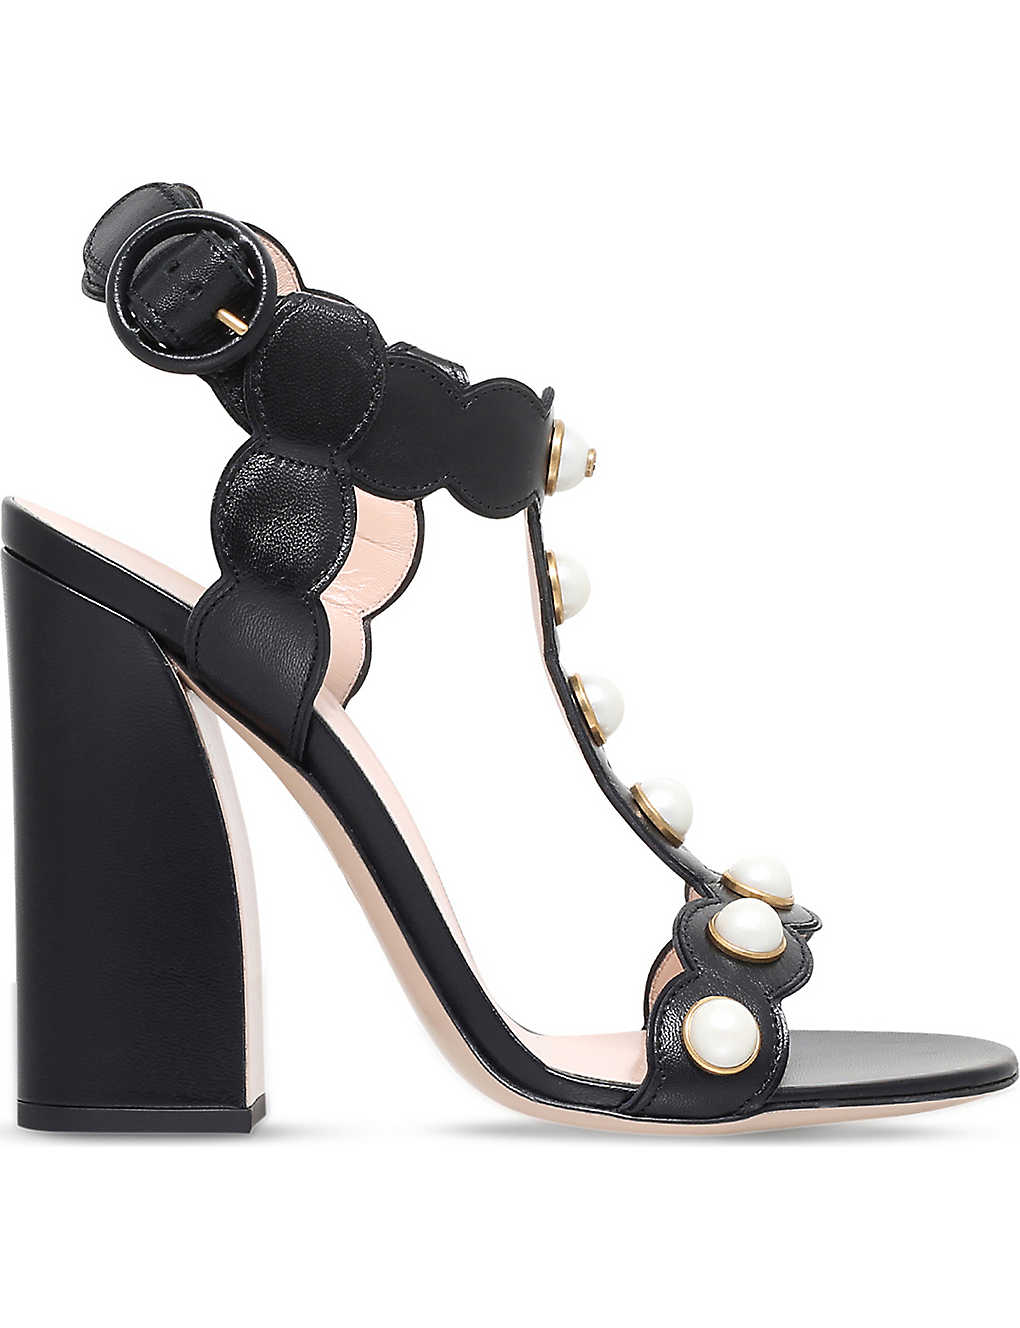 98e3f1ece GUCCI - Willow leather t-bar sandals | Selfridges.com